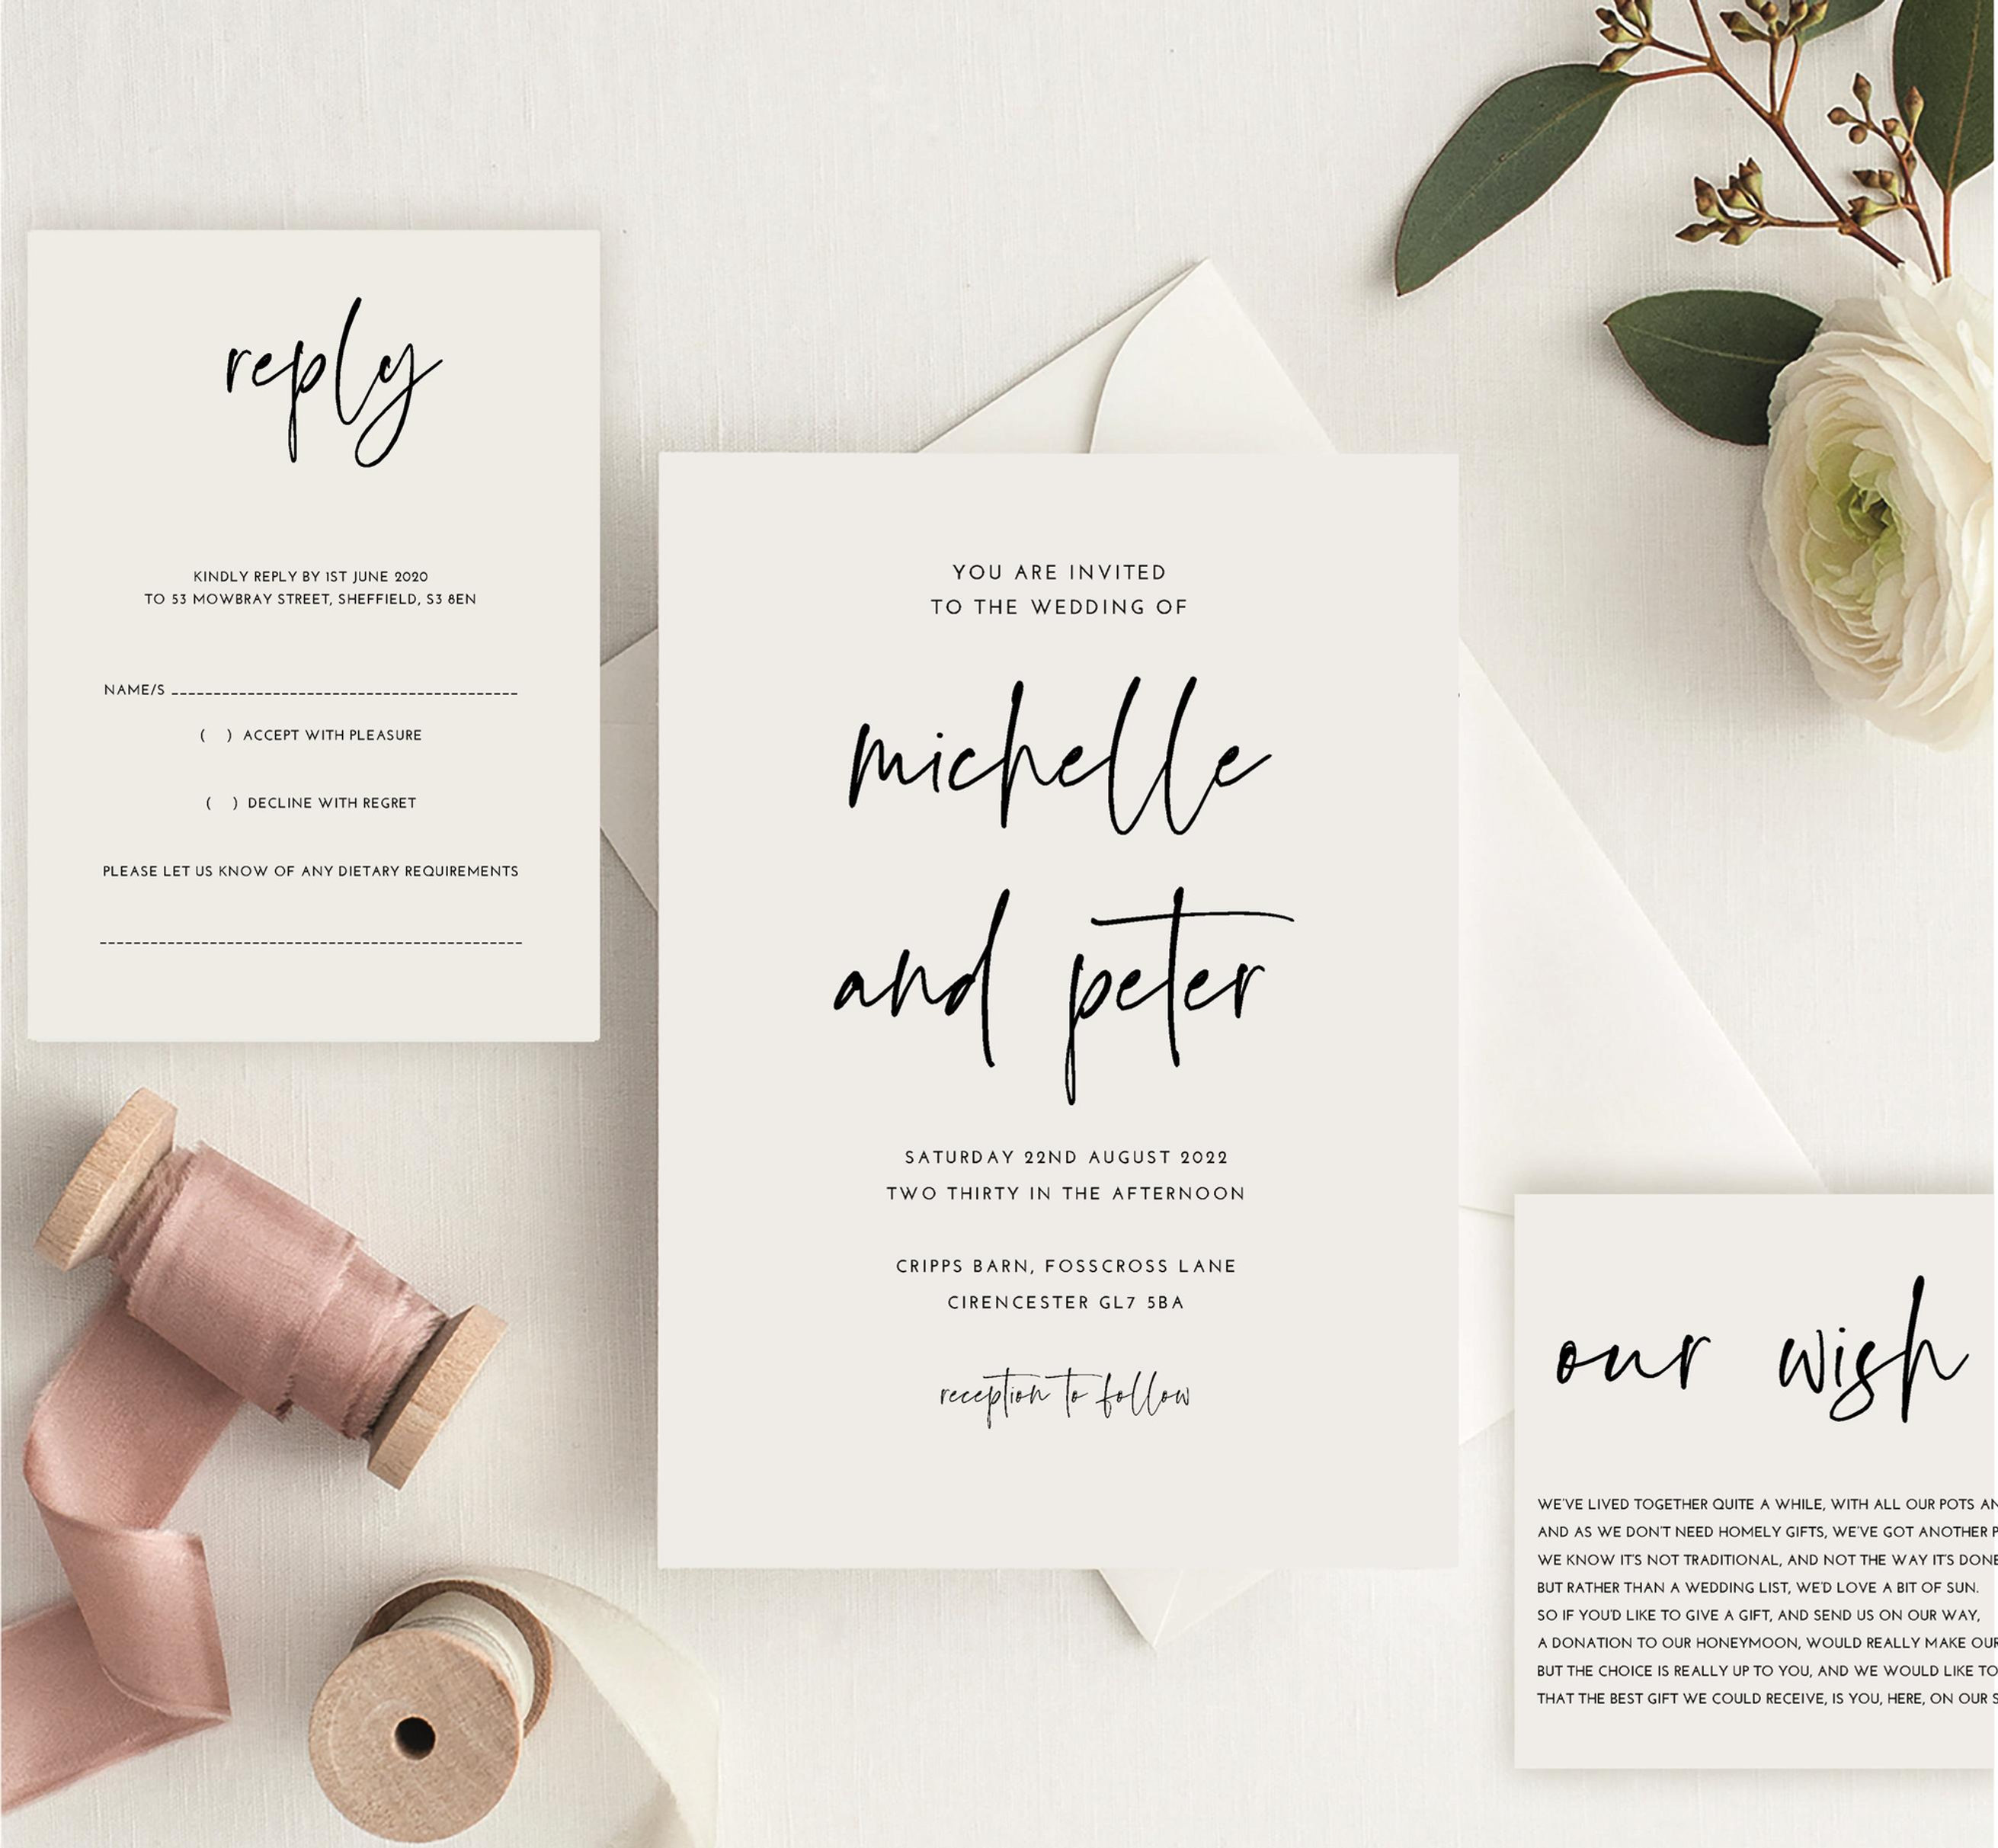 michelle wedding invitation sample including rsvp and wish